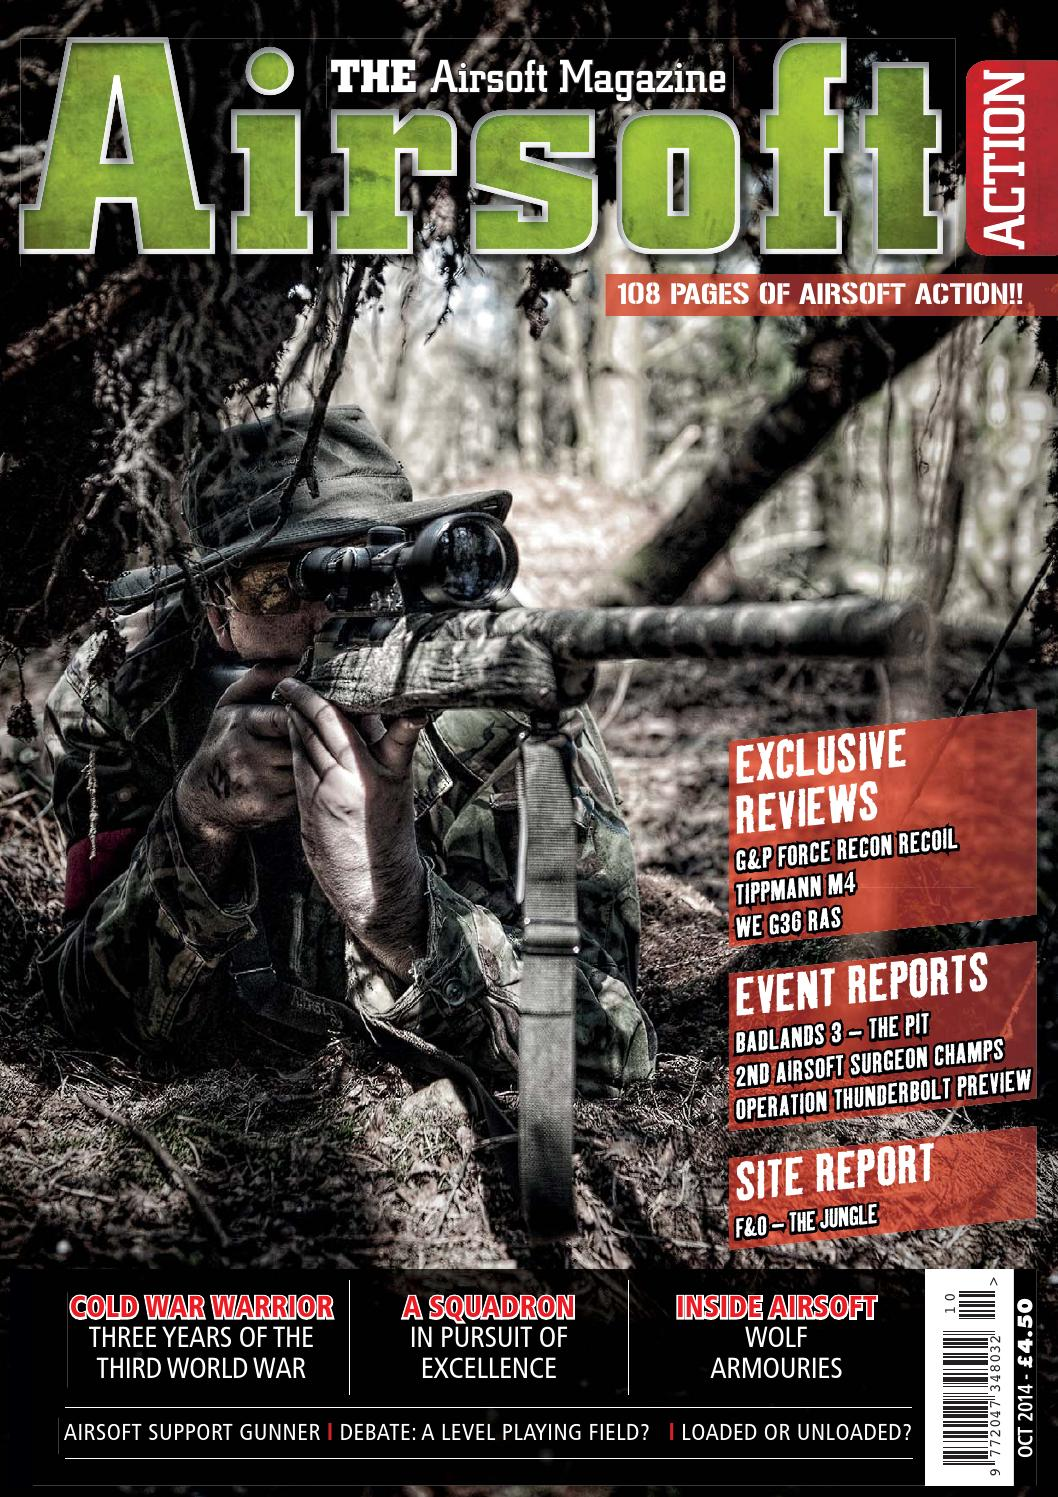 Issue 40 - October 2014 by Airsoft Action Magazine - issuu